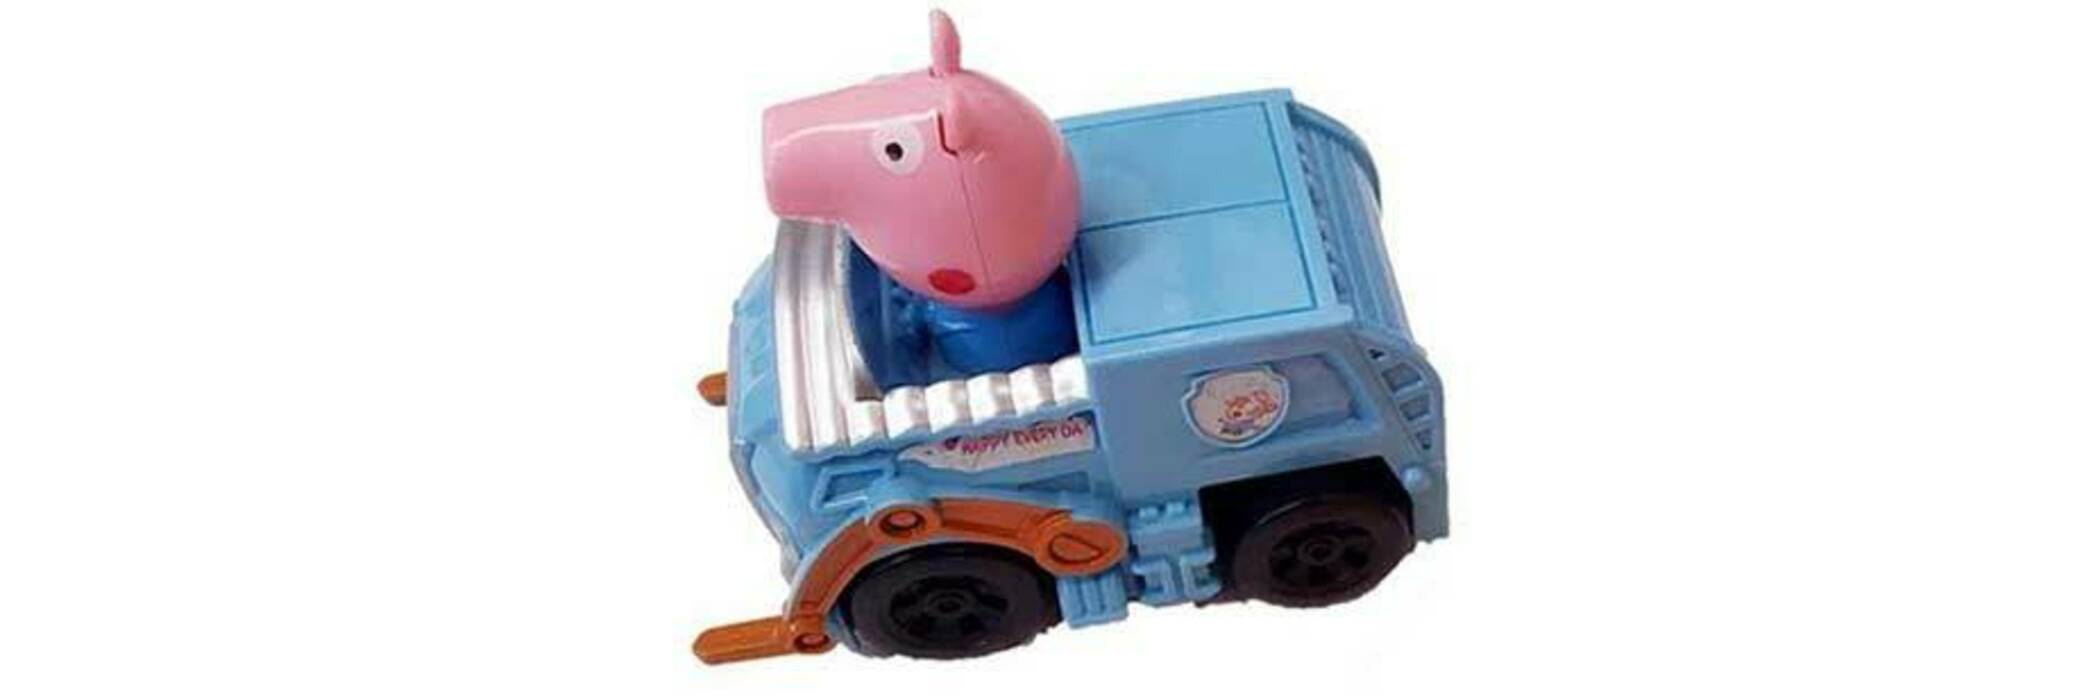 Pig toy from First Mart.